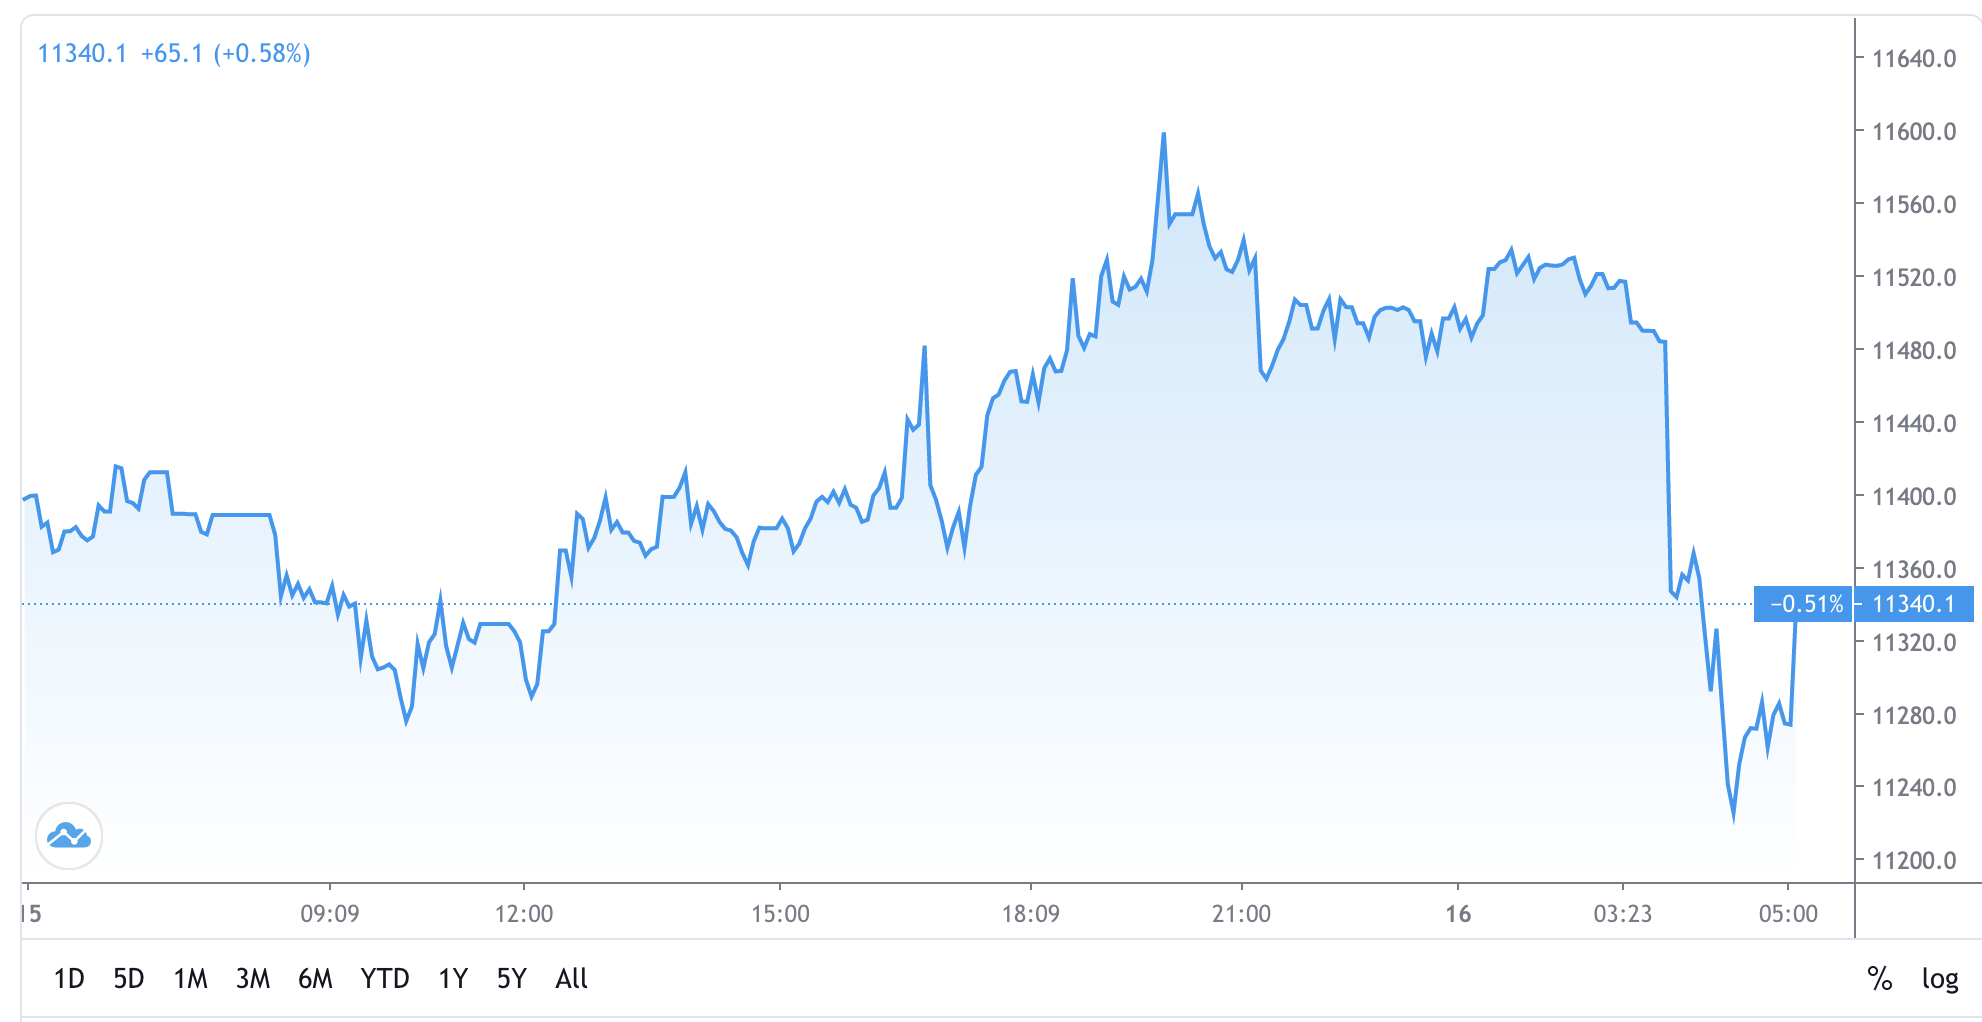 OKEx Suspends Withdrawals, Bitcoin Dropped 2.5% on News